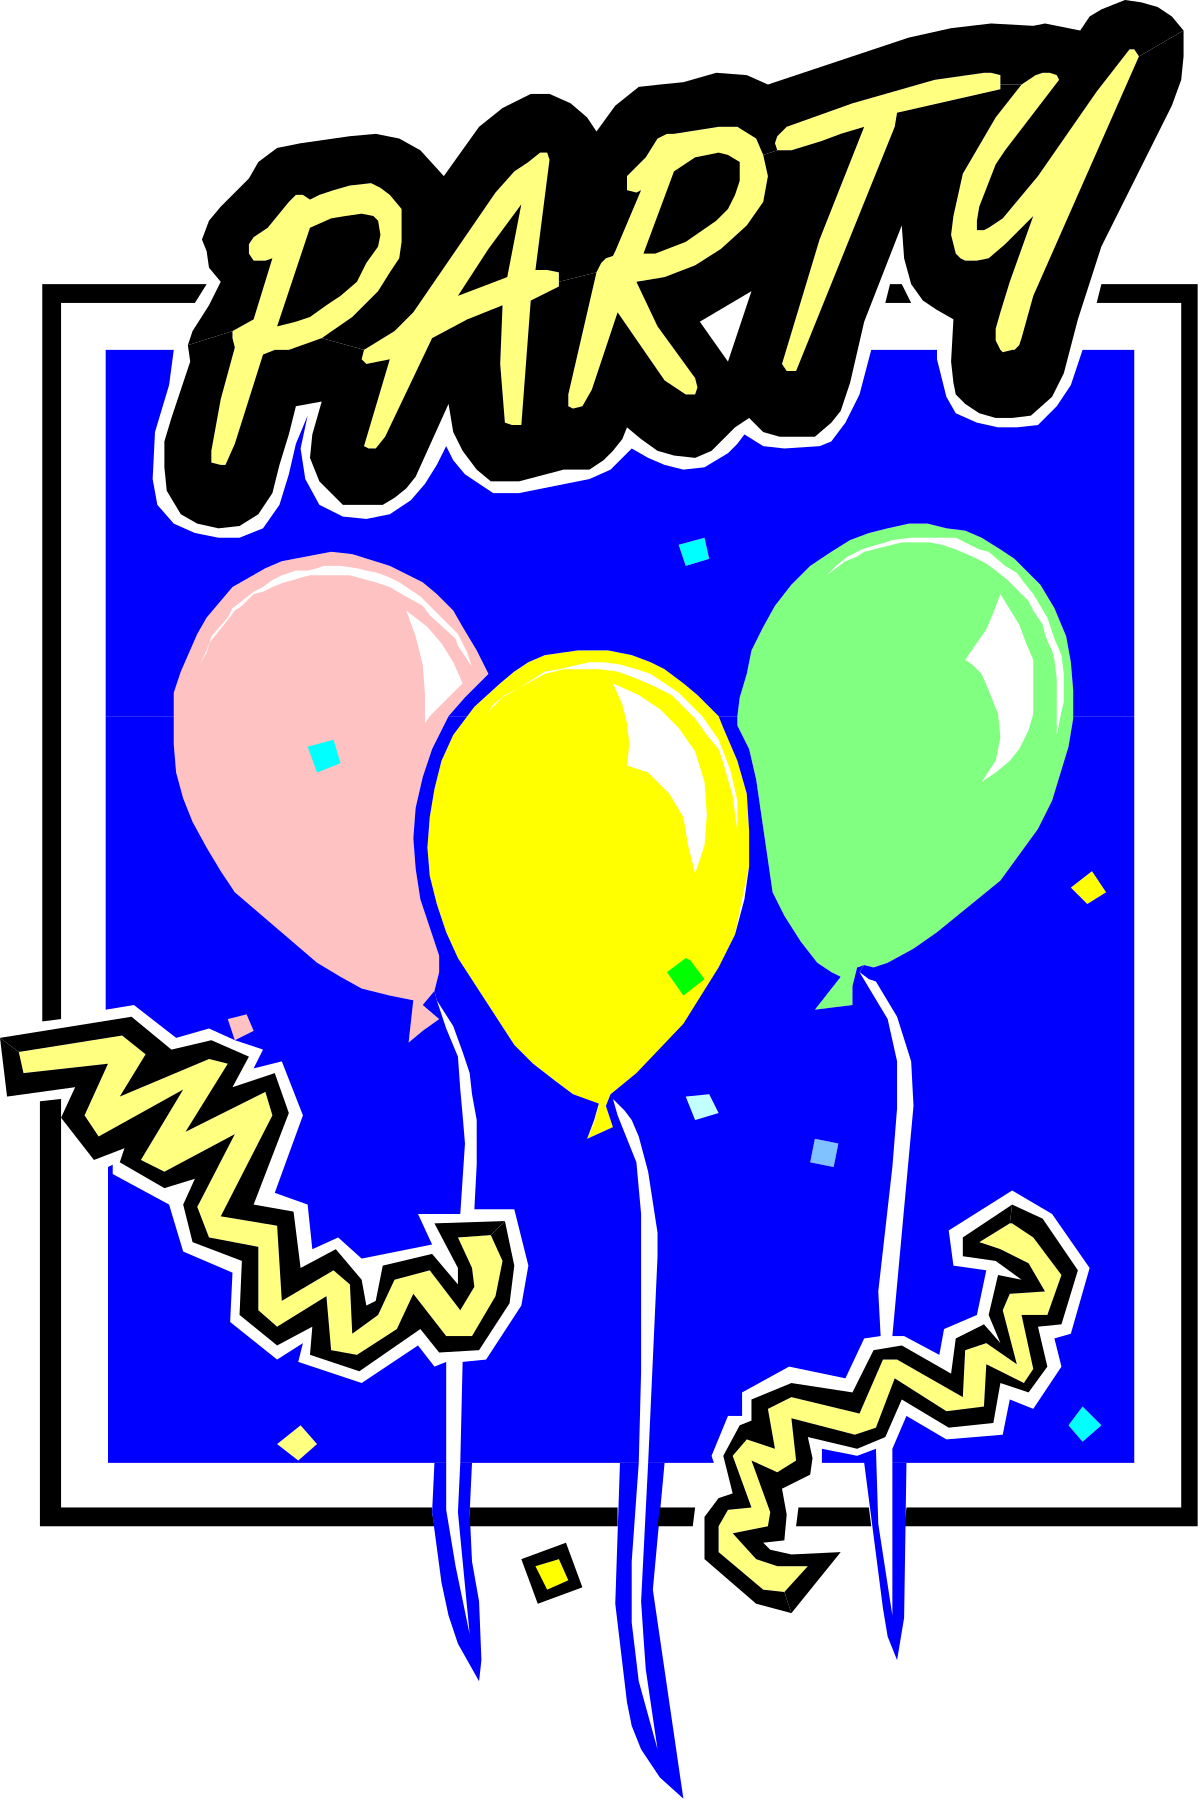 Illustration Balloon Speech Bubble Vector Celebration Multi Colored Symbol Fun Cheerful Design Blue Party - Social Event Happiness Business